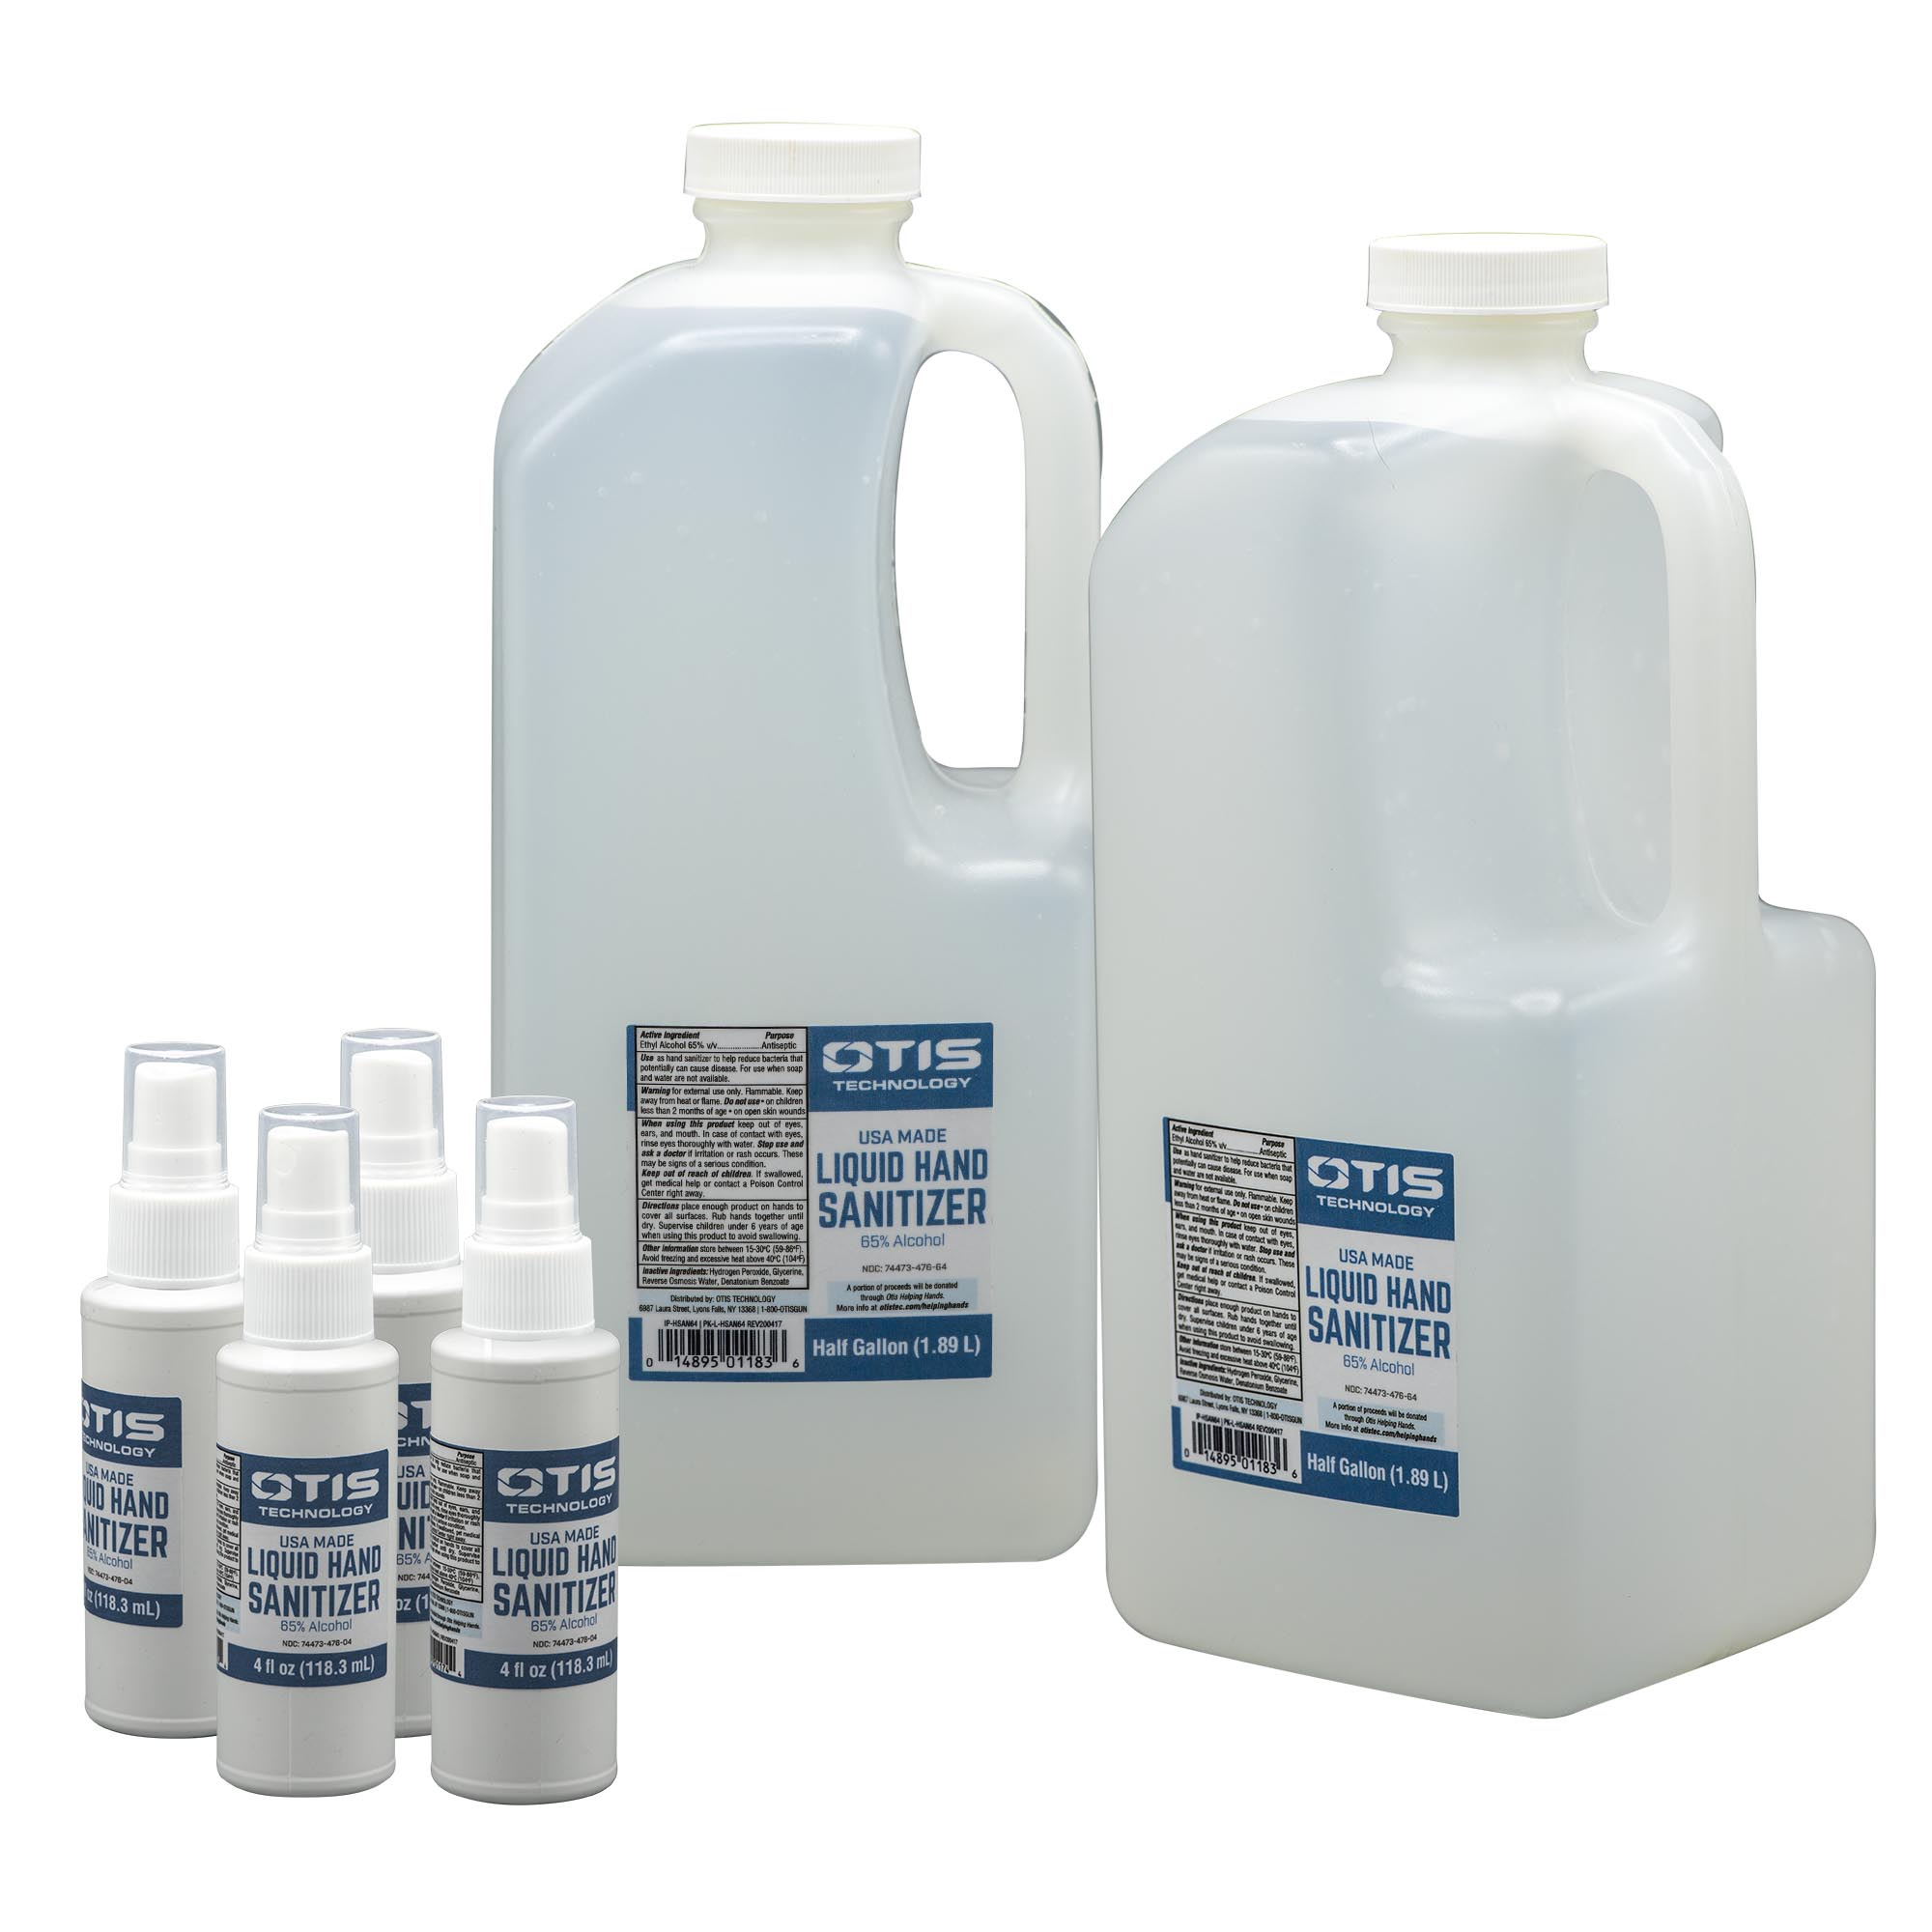 1 Gallon Liquid Hand Sanitizer and Refill Spray Bottles